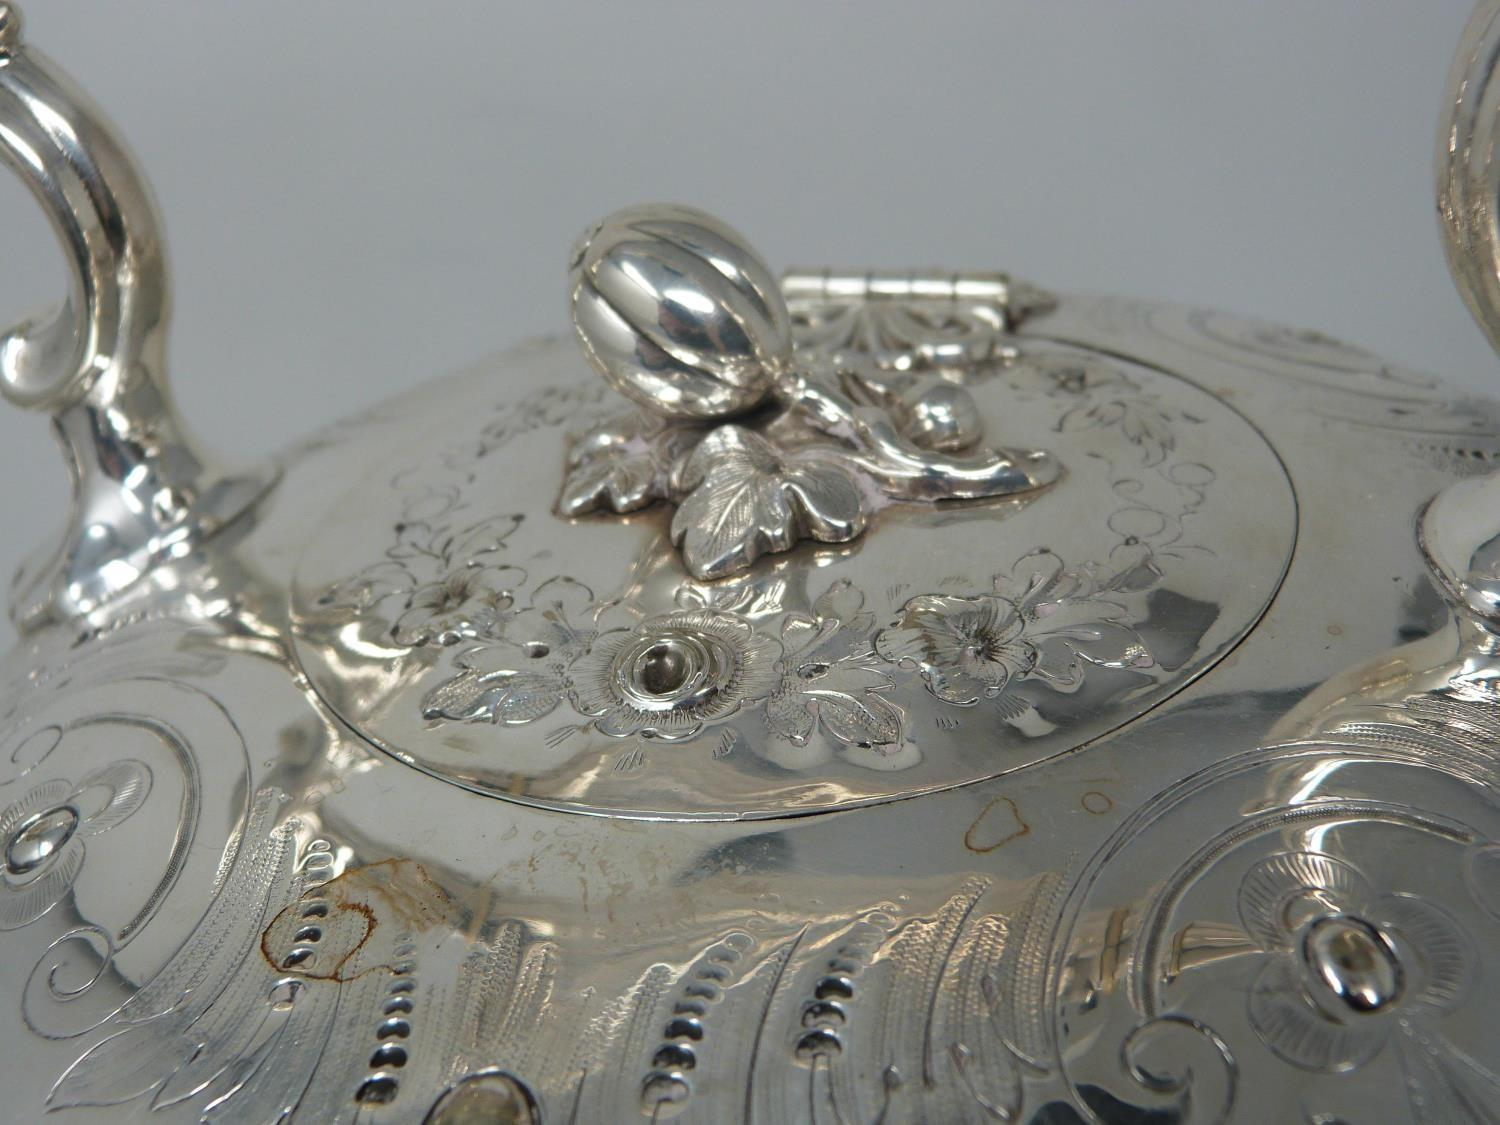 An antique white metal and ivory spirit kettle and stand. The kettle has a flower bud finial and - Image 7 of 17